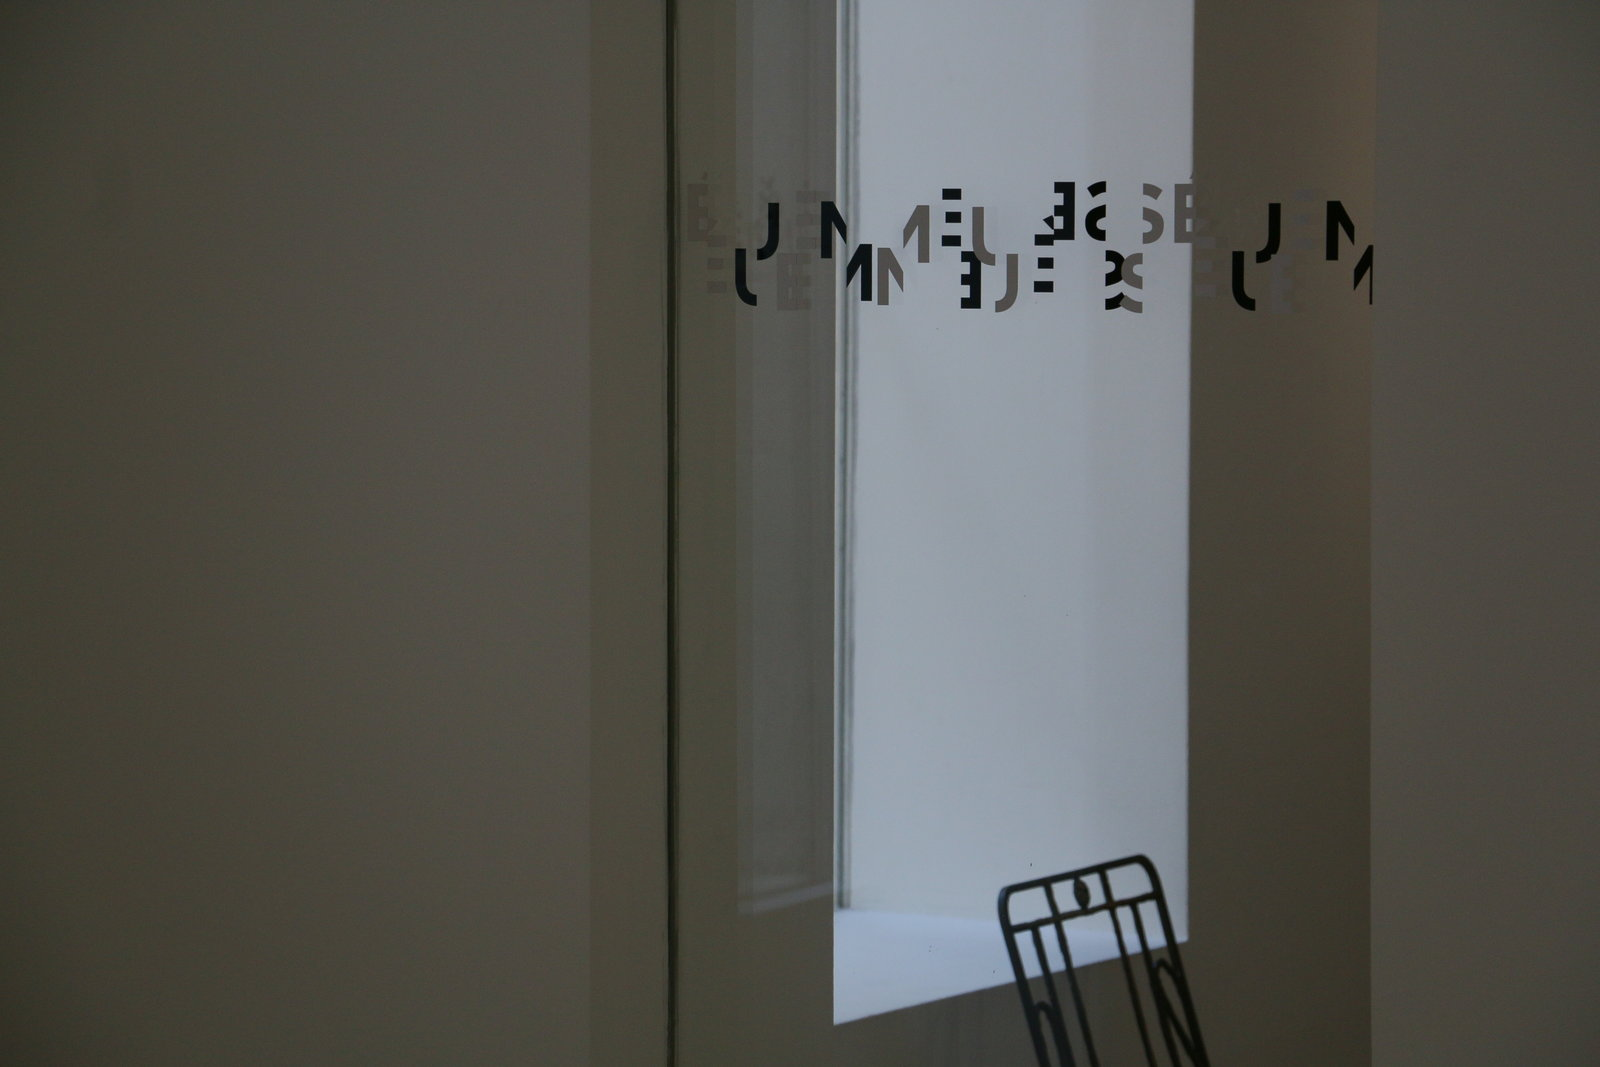 Unreadable Letters in Musee Picasso in Paris